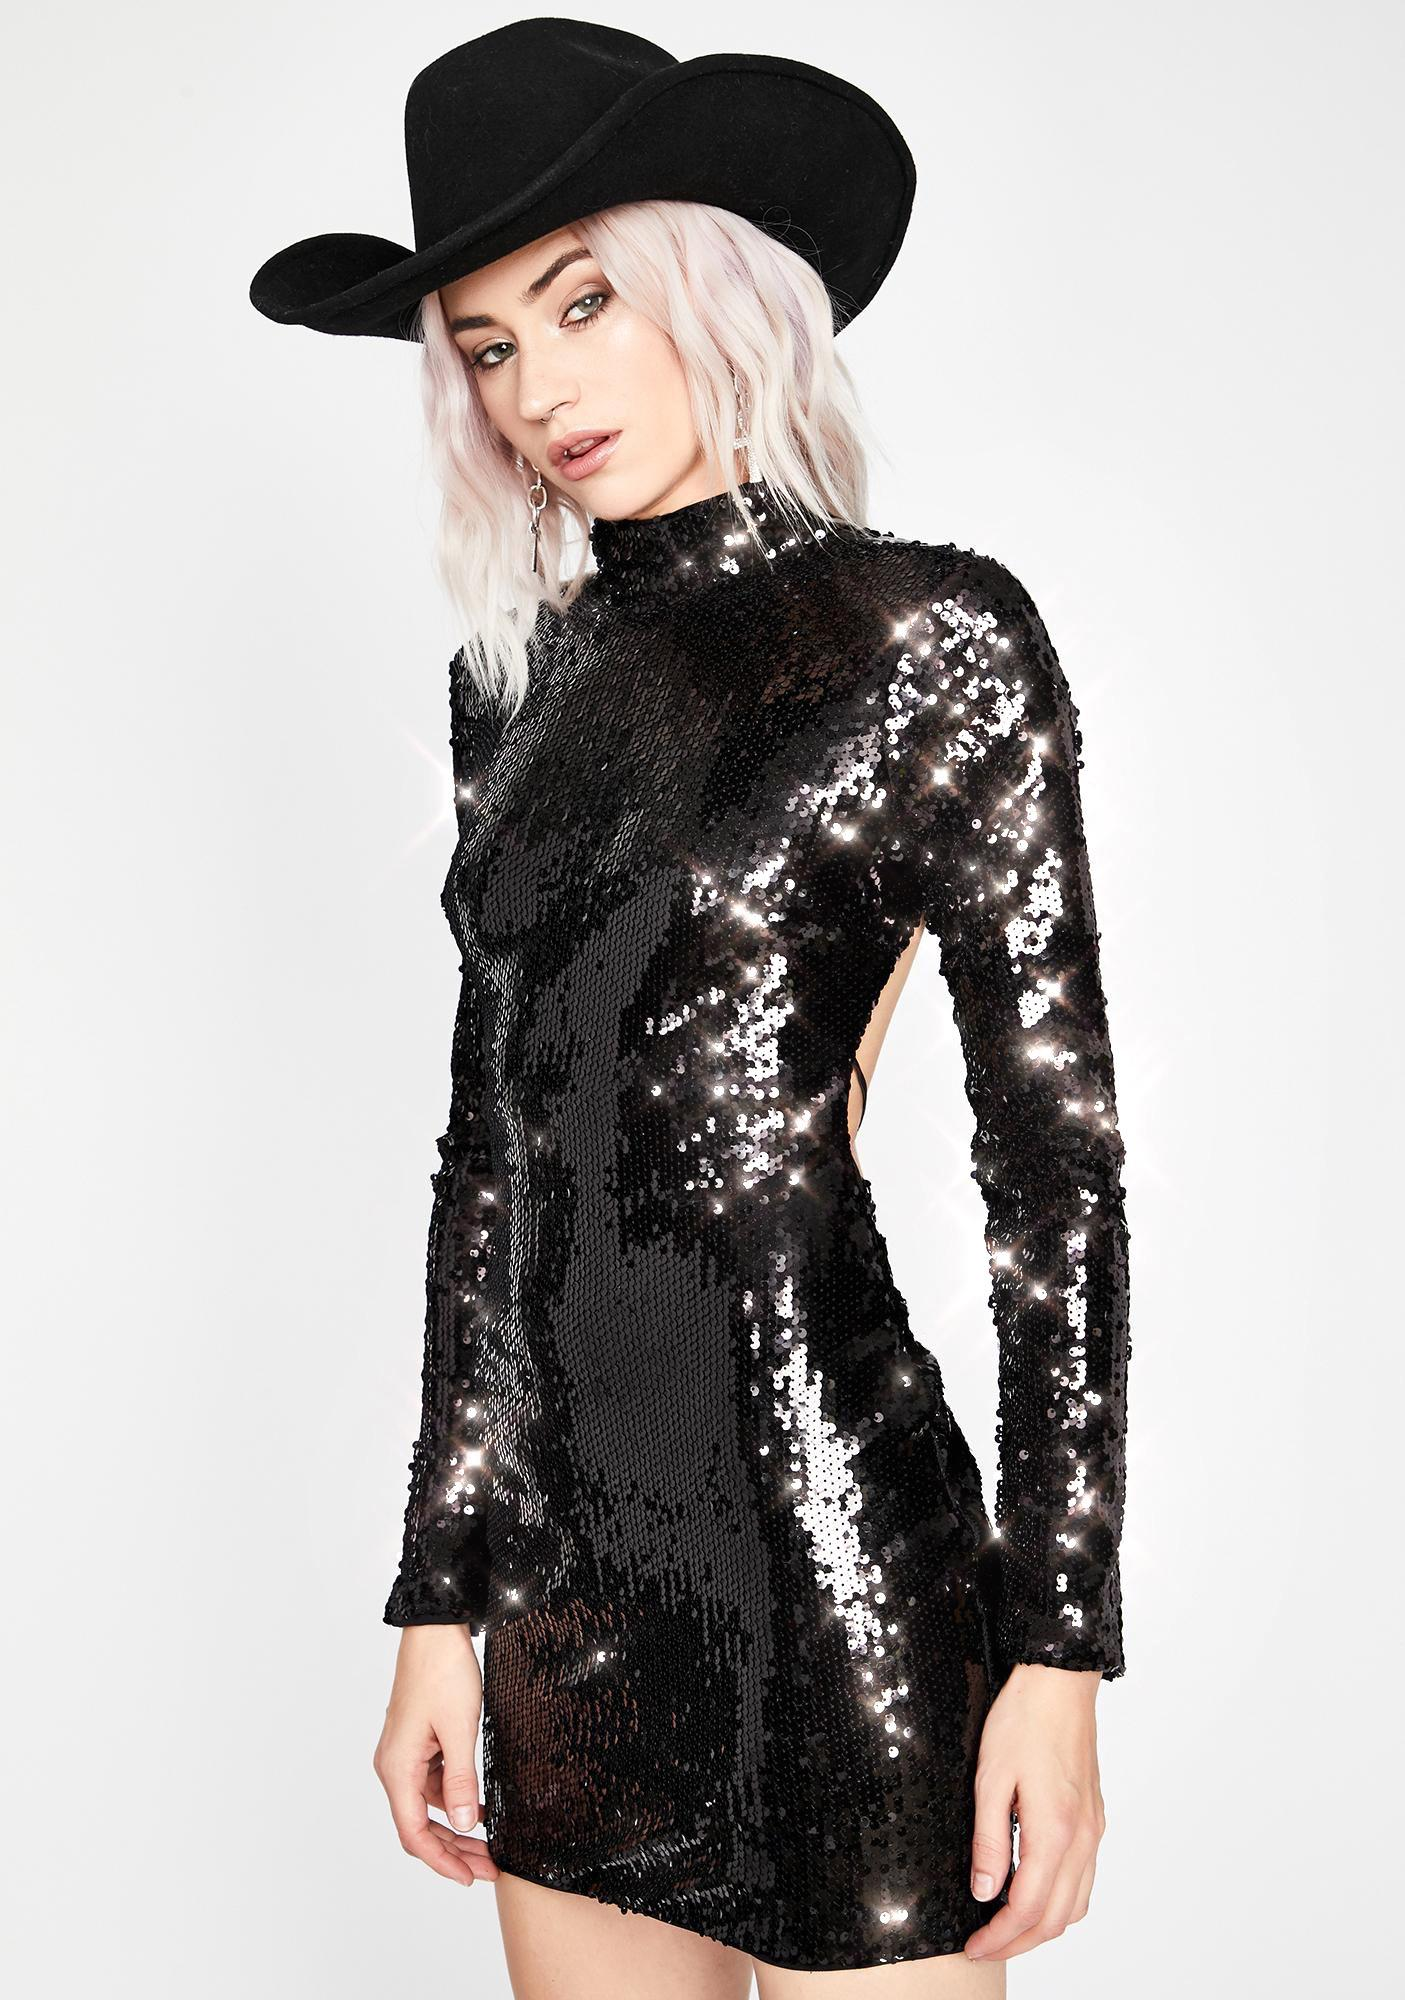 Dark Hologram Star Sequin Dress